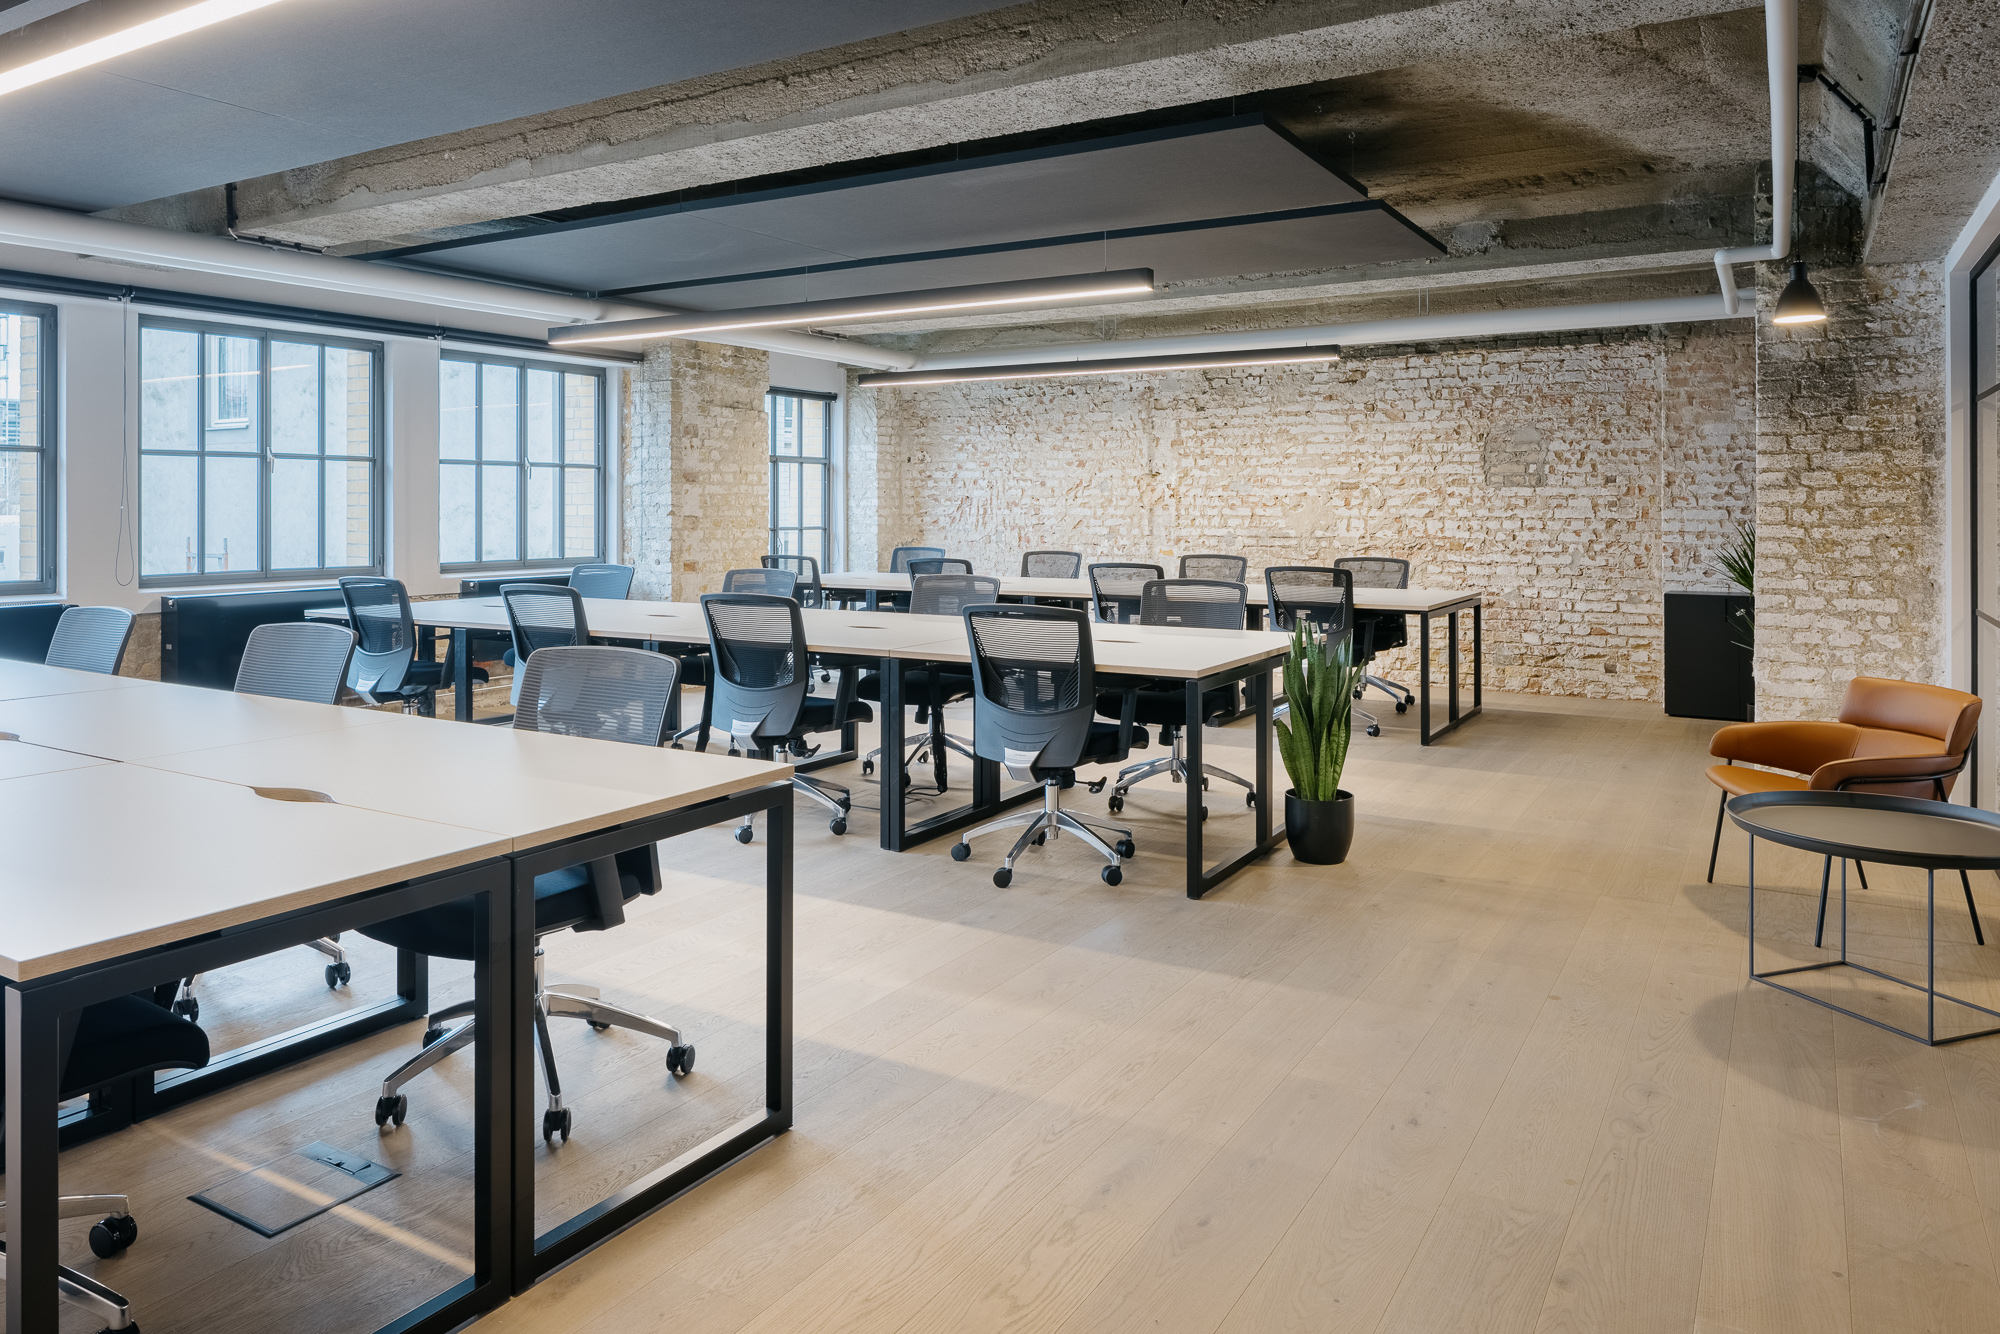 Eiswerk Private Office 26 person workspace